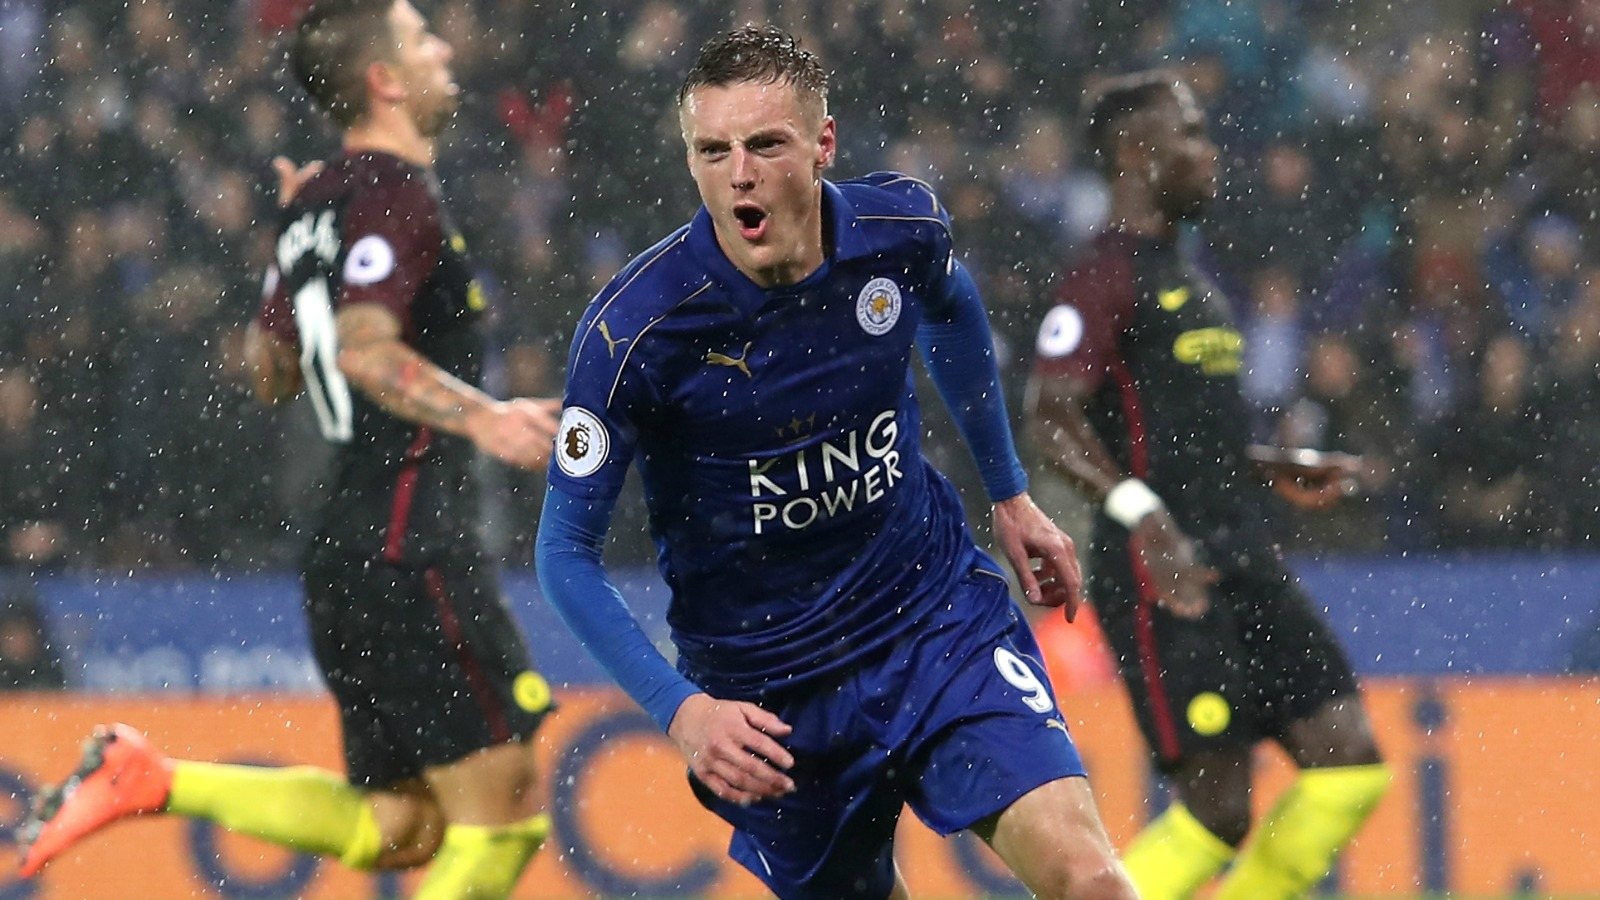 Jamie Vardy got back on track with hat trick vs. Man City, and Leicester City might too